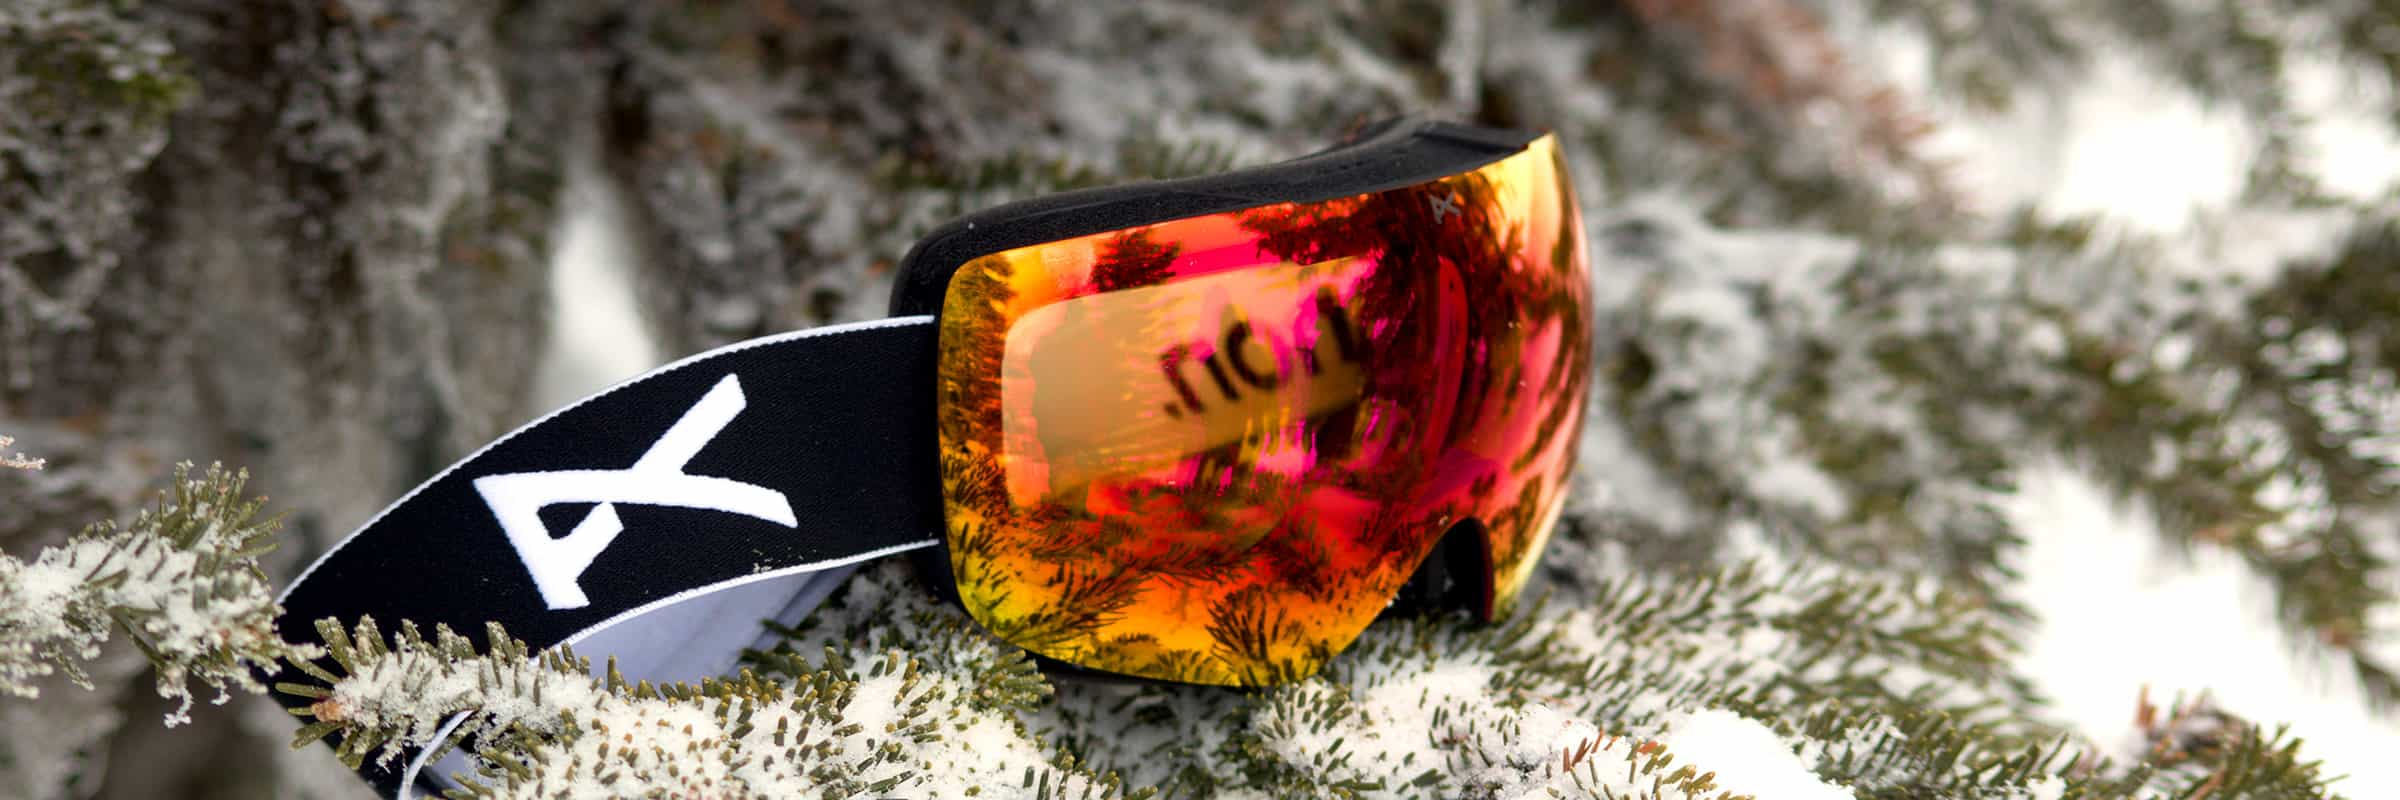 Anon MIG Ski Goggles Reviewed